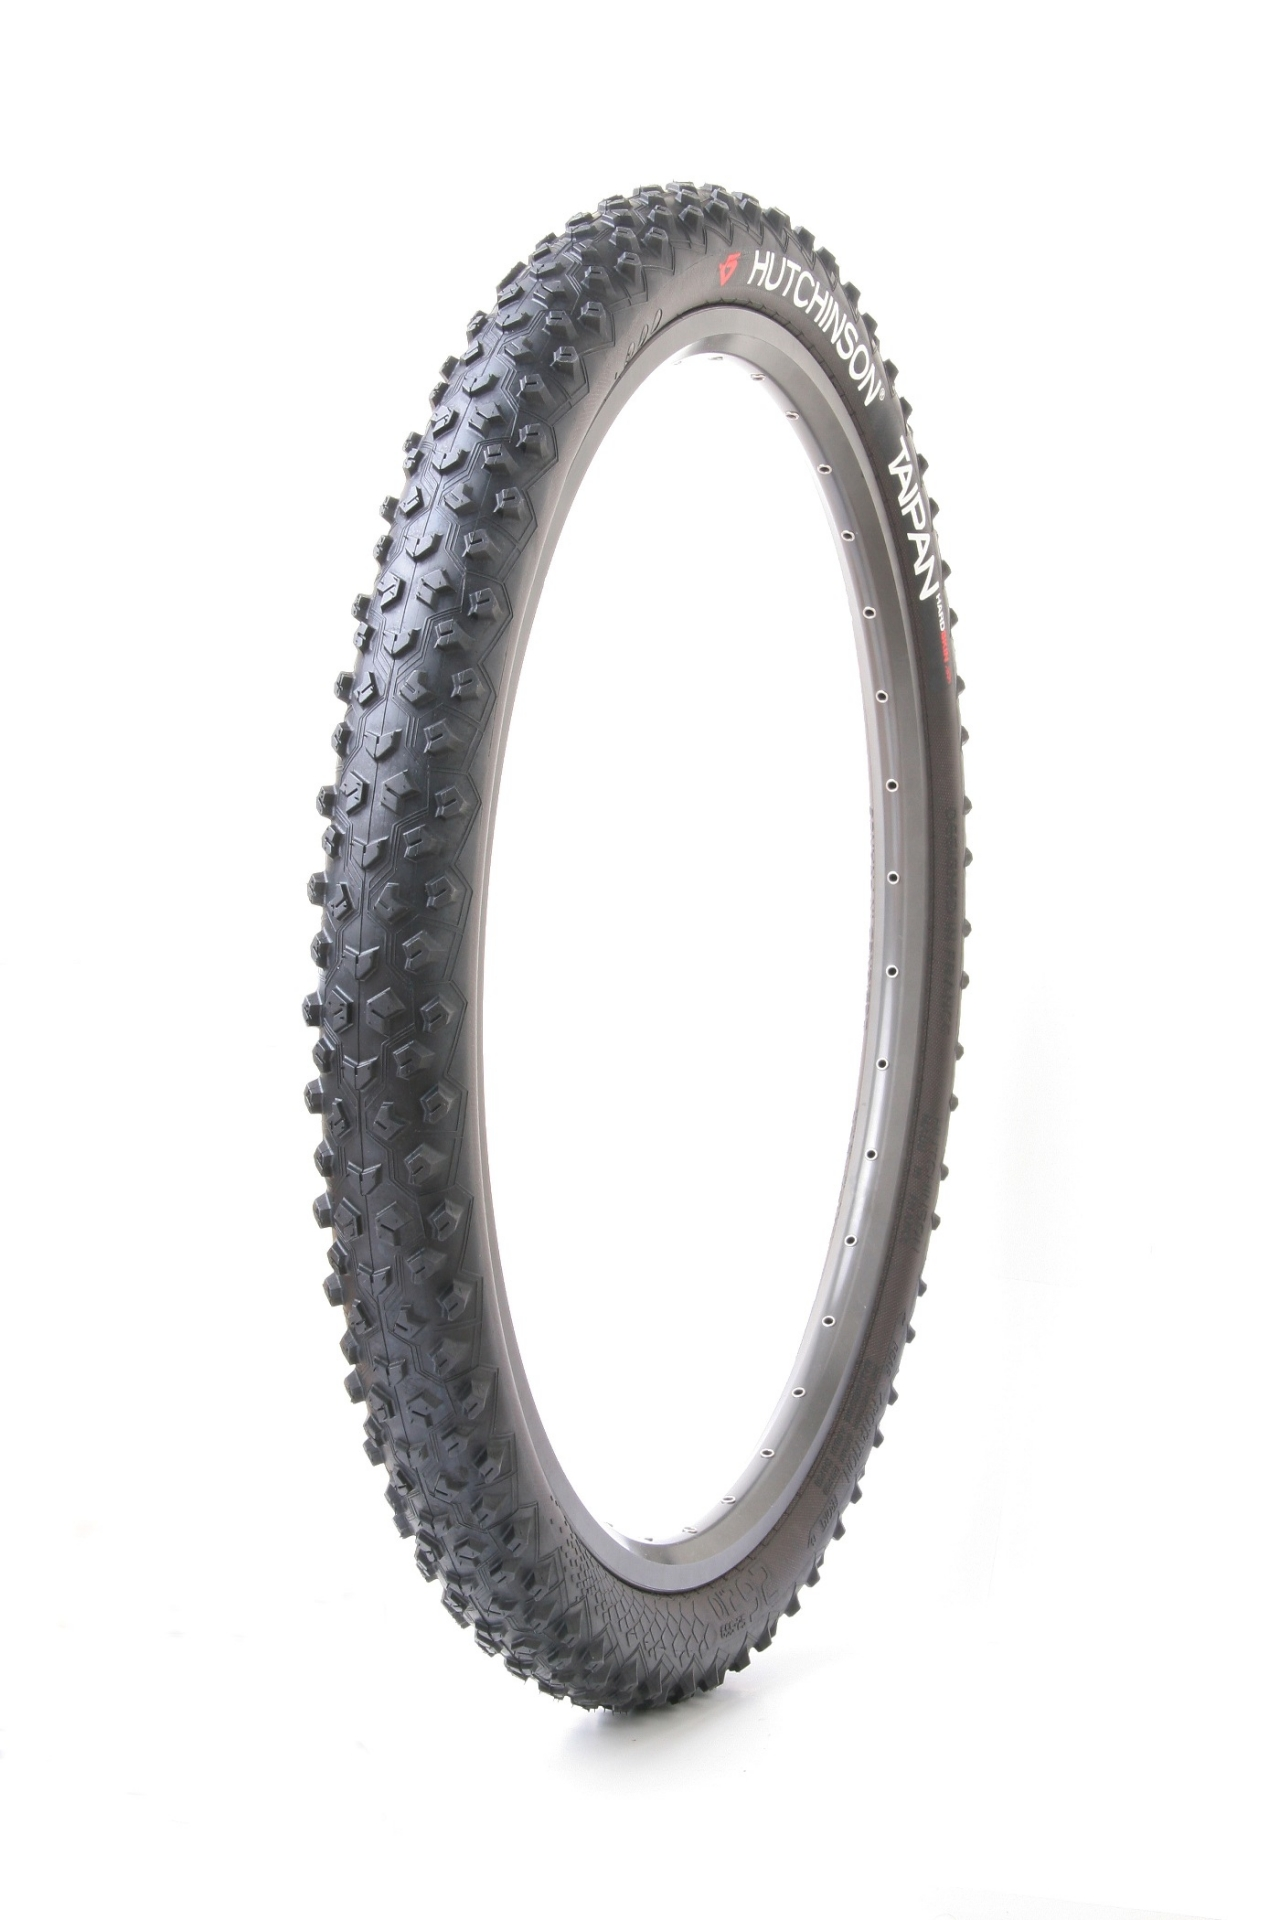 Pneu 29 x 2.35 Hutchinson Taipan Tubeless Ready E-Bike TT / TL